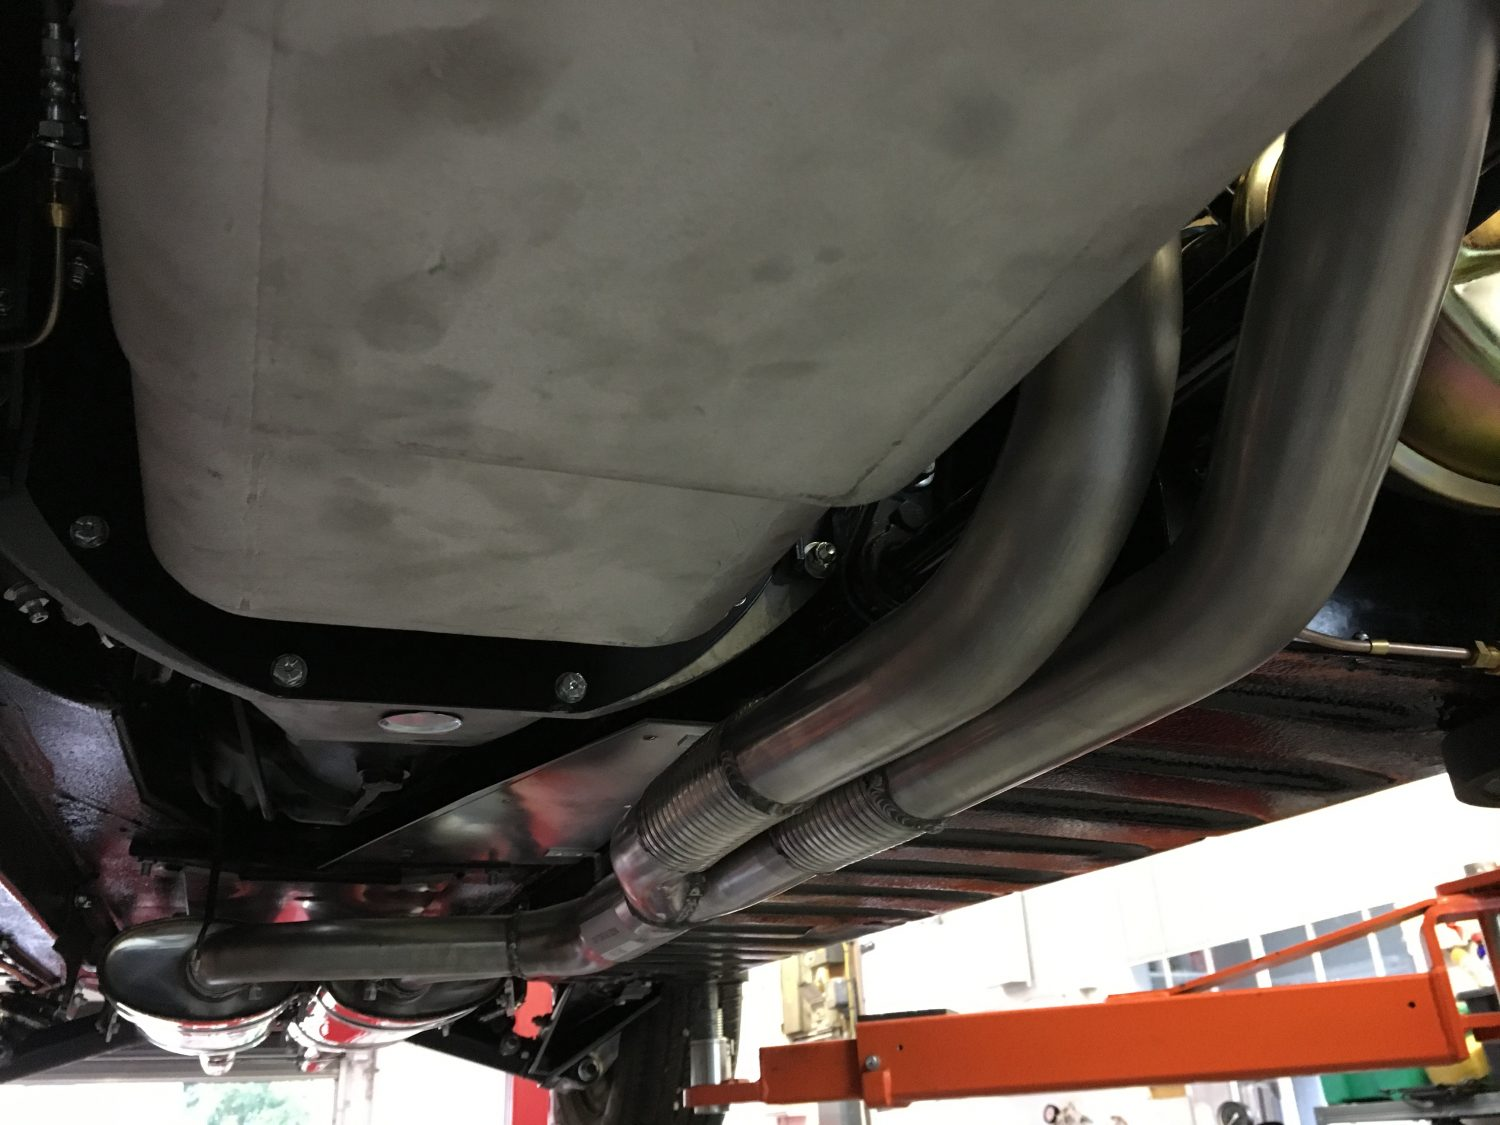 Jaguar E Type For Sale >> Fitting up the new stainless exhaust - Bridge Classic Cars : Bridge Classic Cars